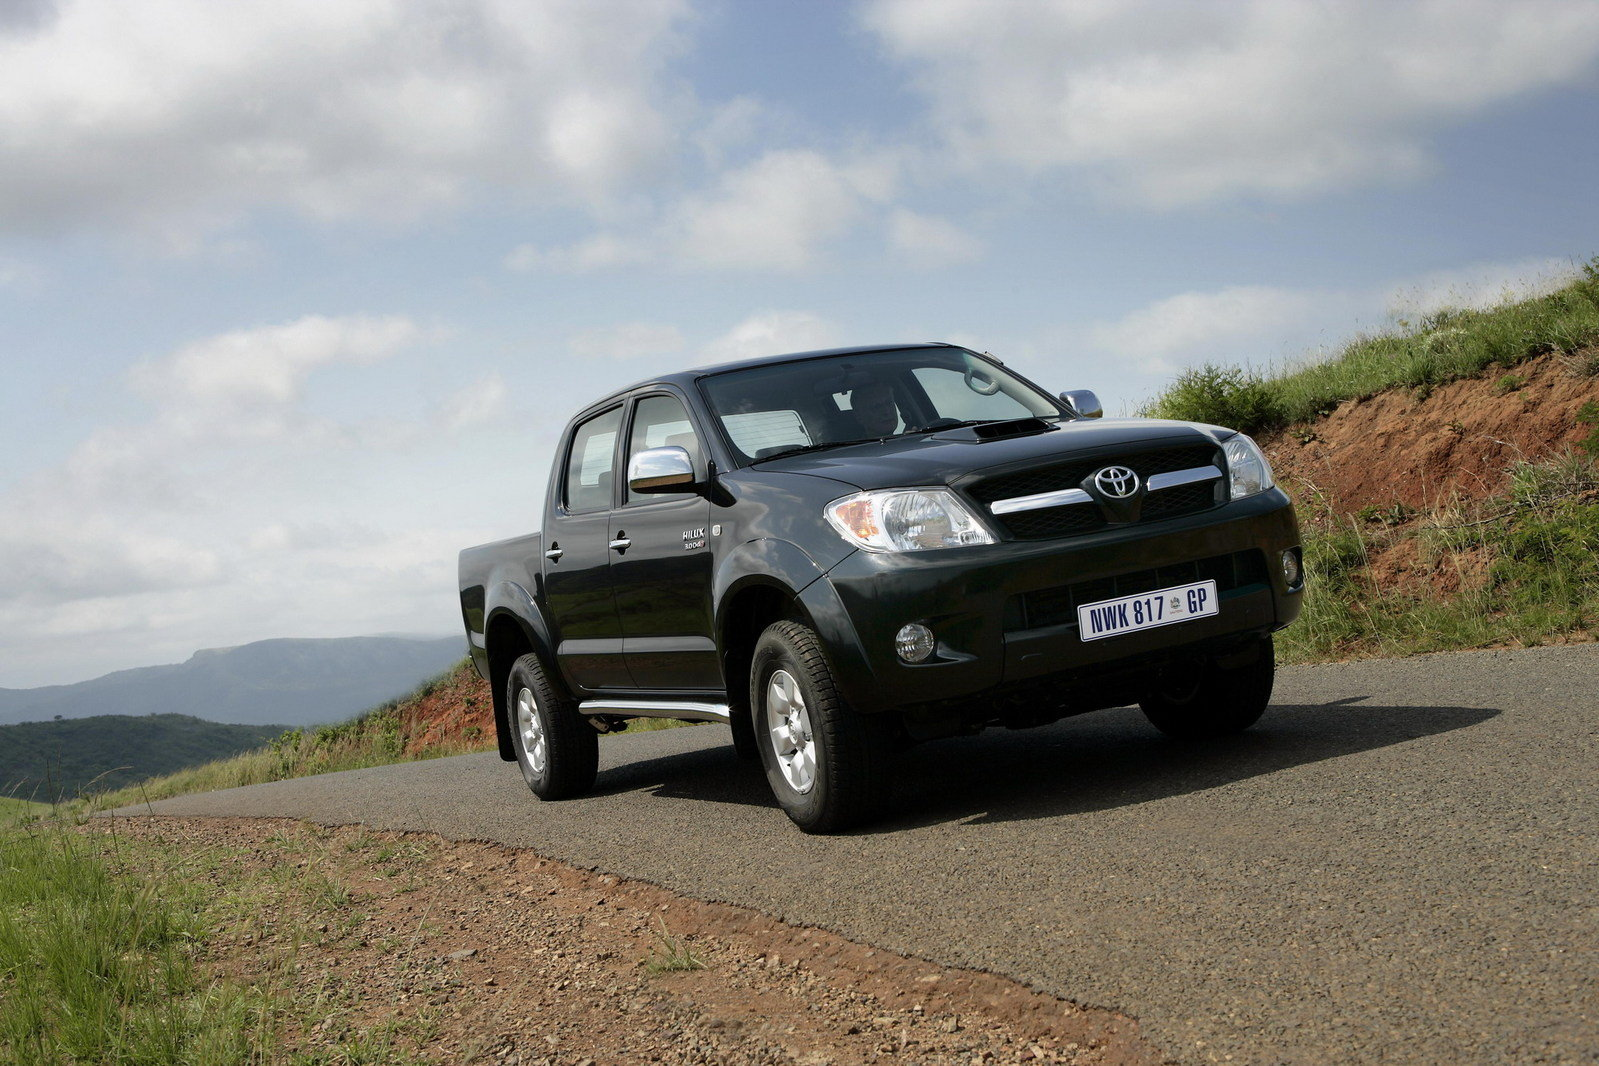 2007 toyota hilux picture 158005 car review top speed. Black Bedroom Furniture Sets. Home Design Ideas